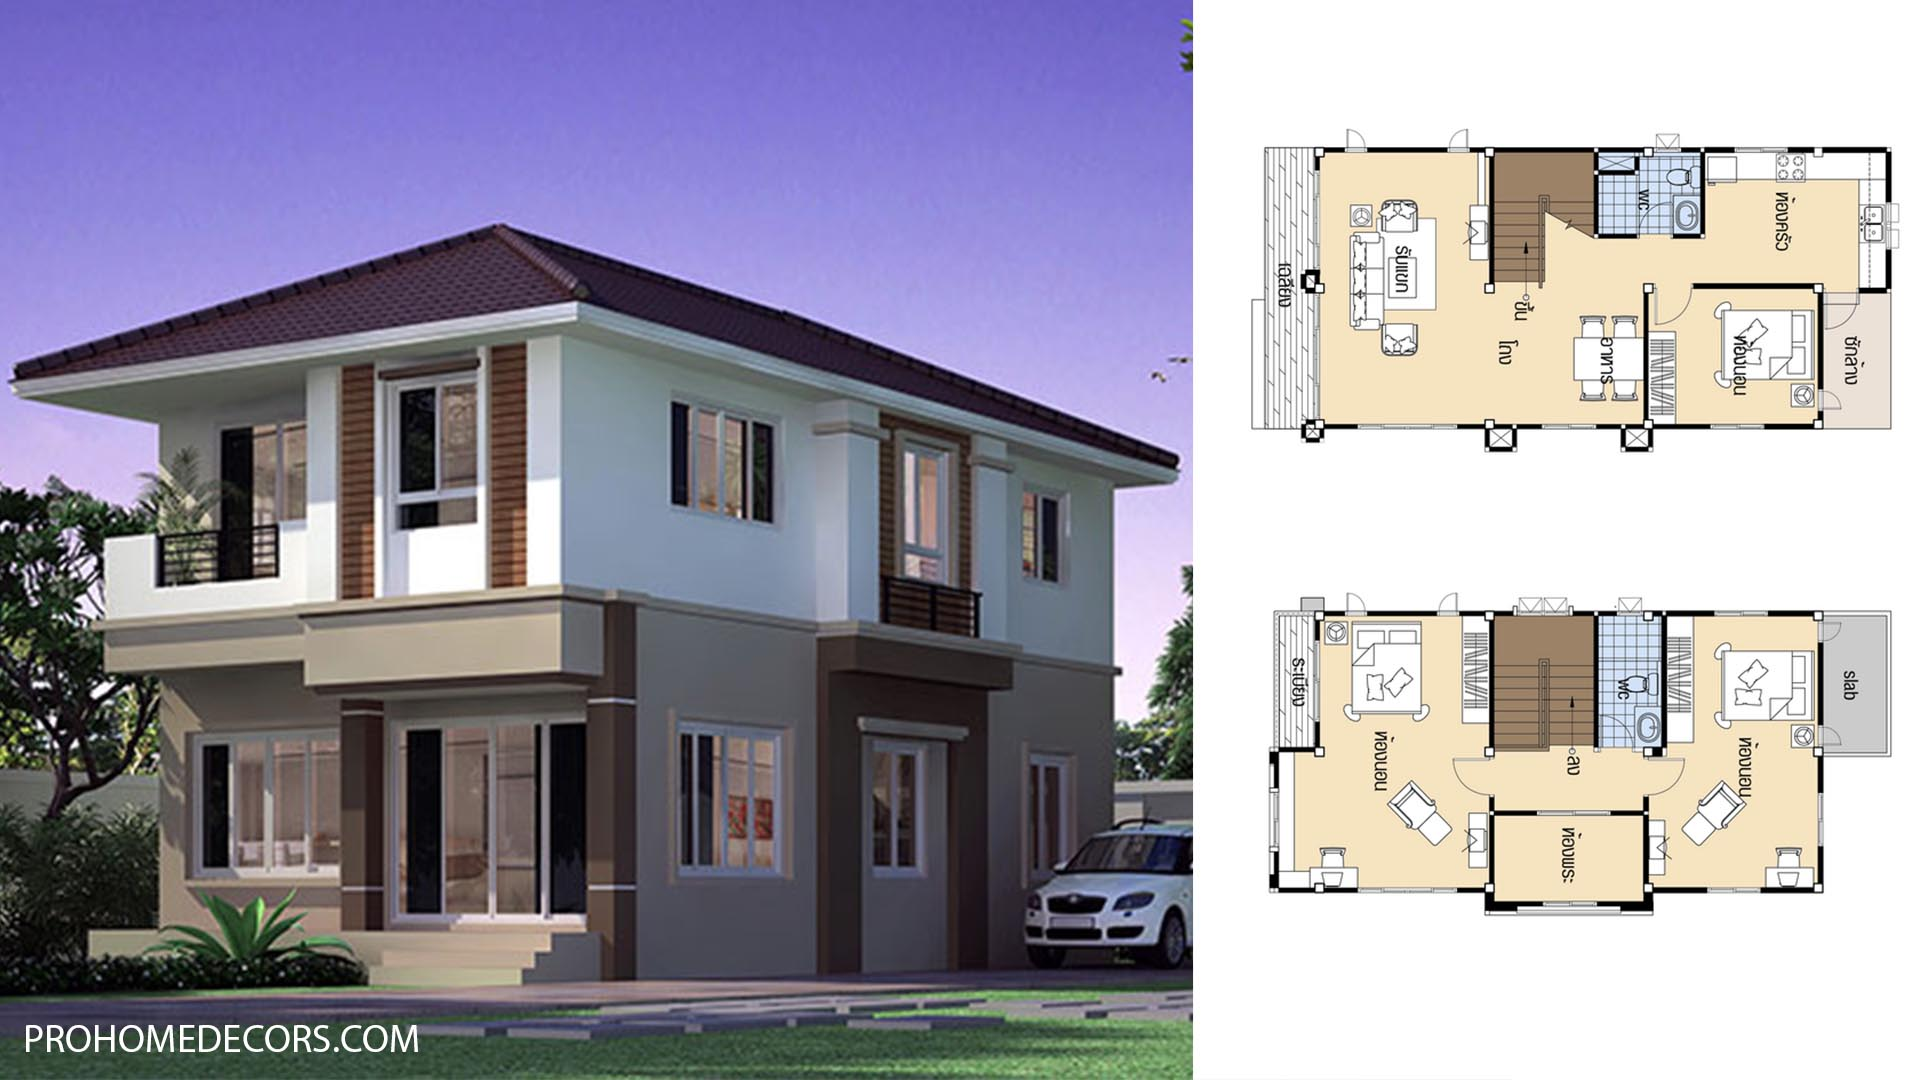 House Plans 6.3×11.5 with 3 Beds